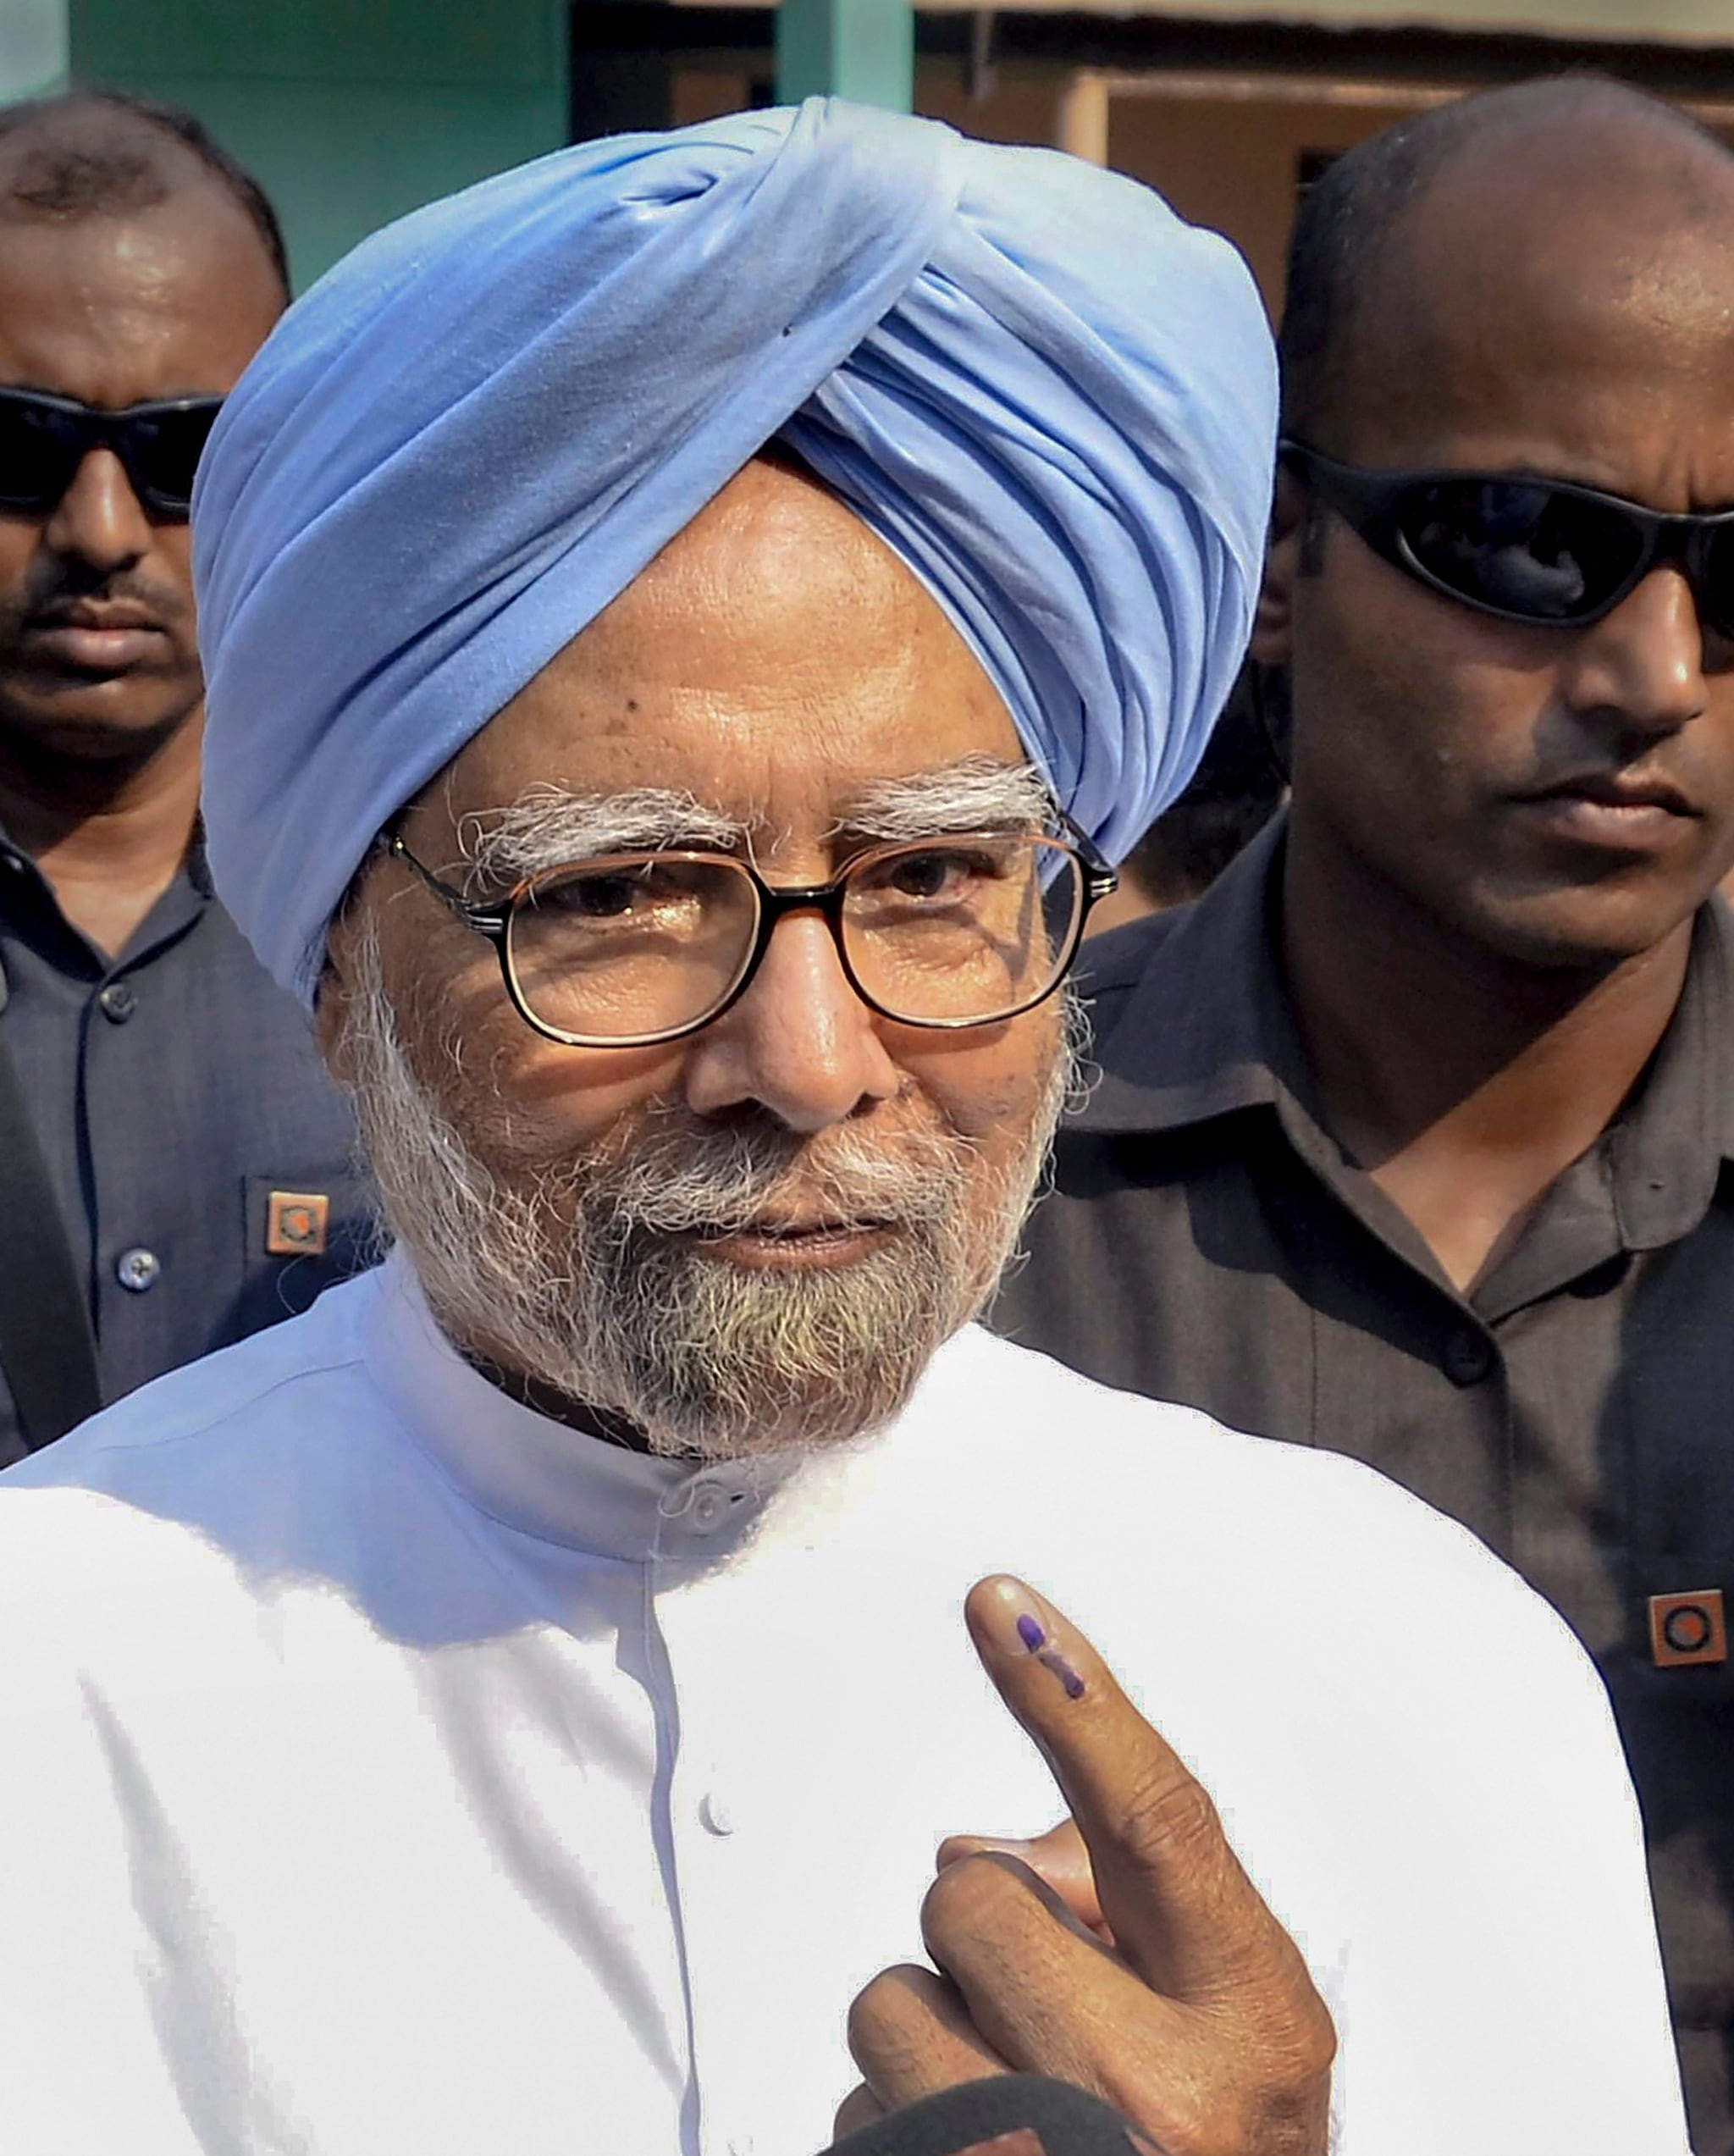 Former prime minister and senior Congress leader Manmohan Singh shows his finger marked with indelible ink at a polling station after casting vote for the third phase of Lok Sabha elections, in Guwahati, Tuesday, April 23, 2019. (PTI Photo)